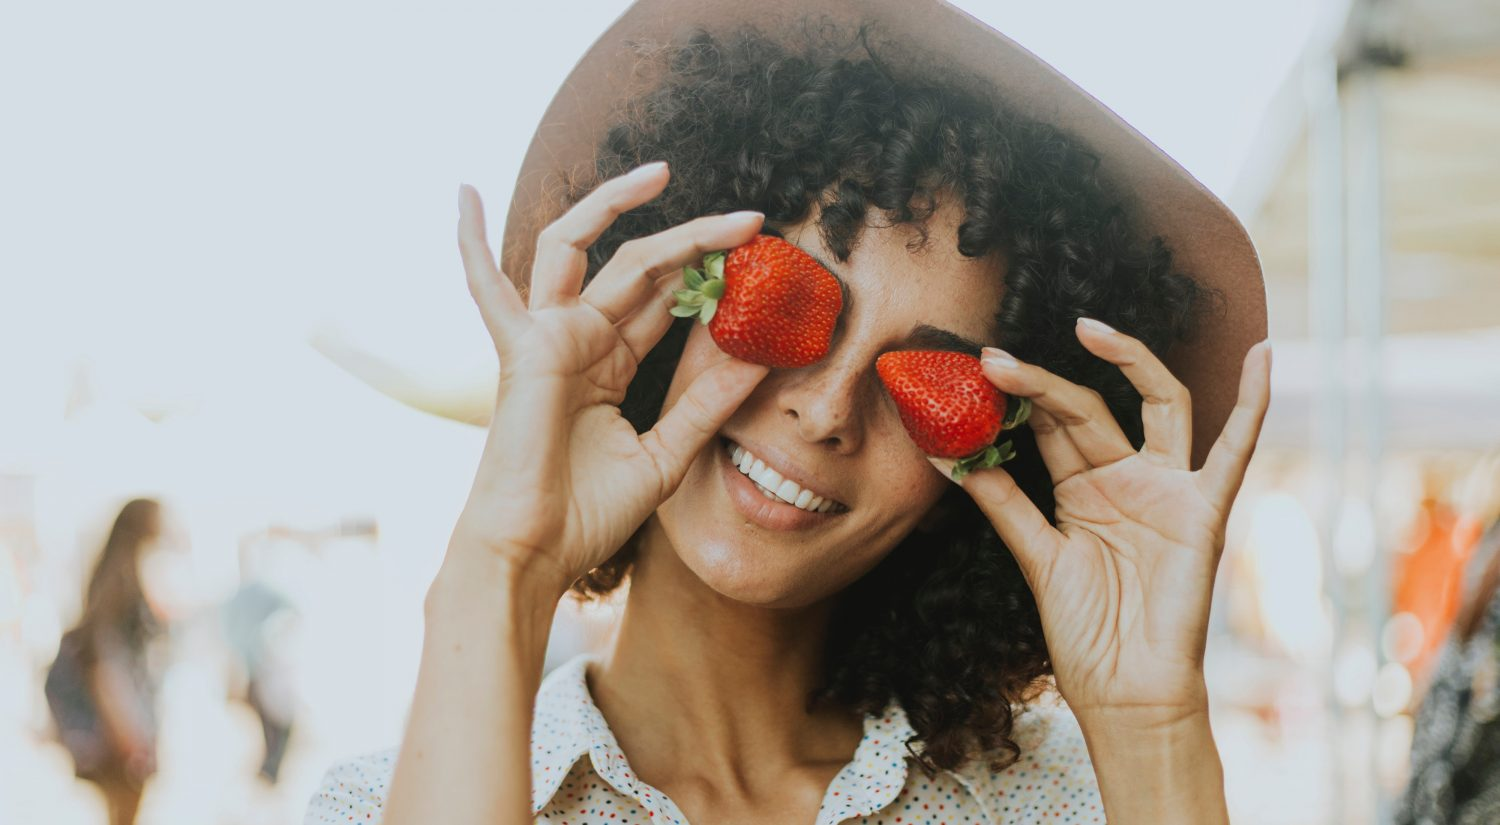 Beautiful healthy woman with strawberries